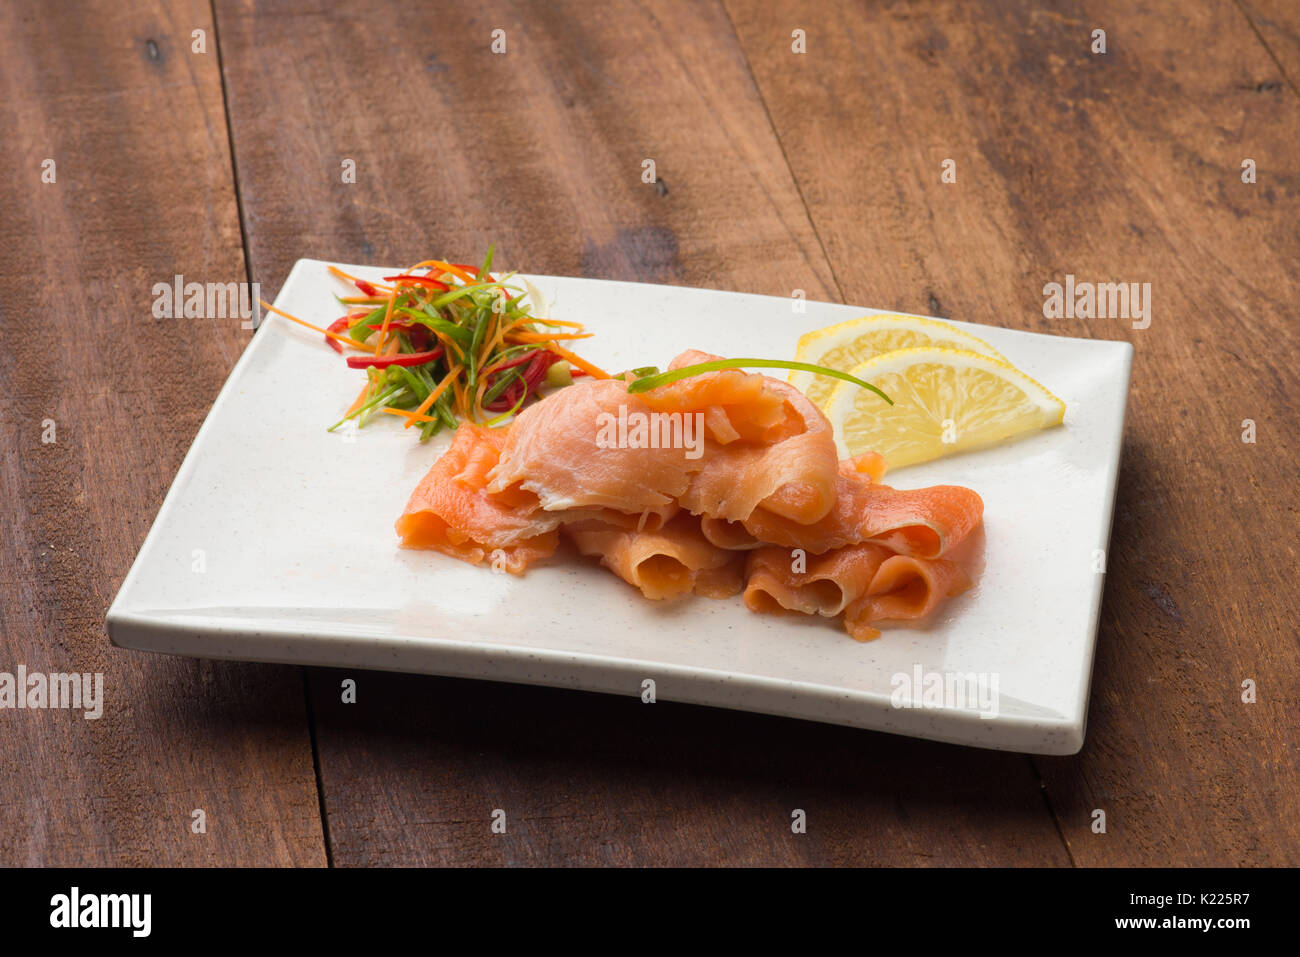 Croustades Stock Photos & Croustades Stock Images - Alamy